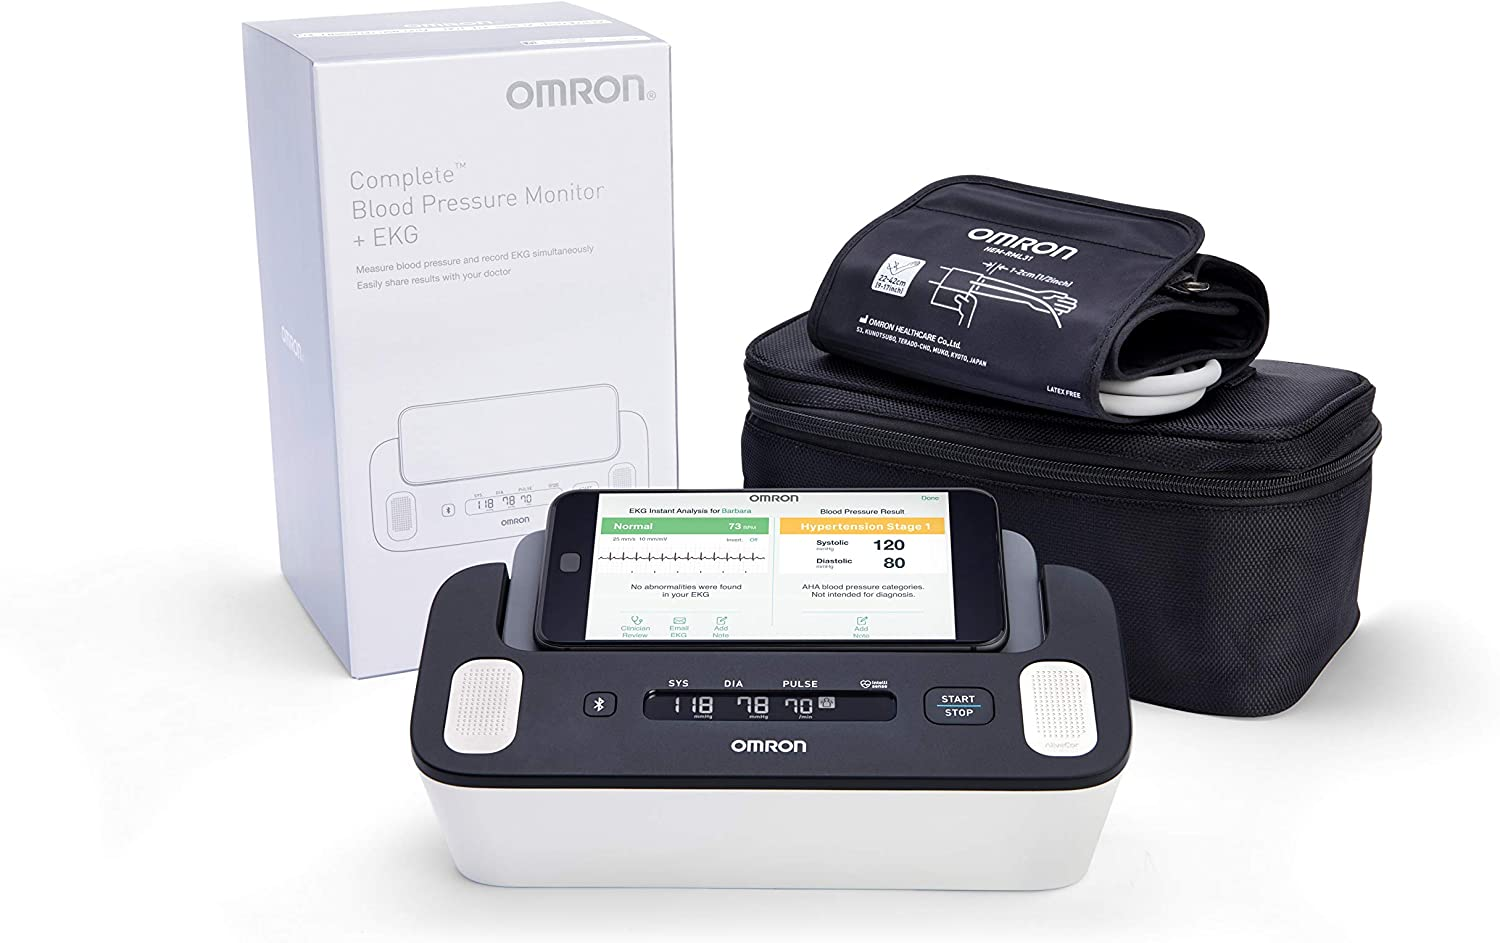 Omron Complete Wireless Upper Arm BP and EKG